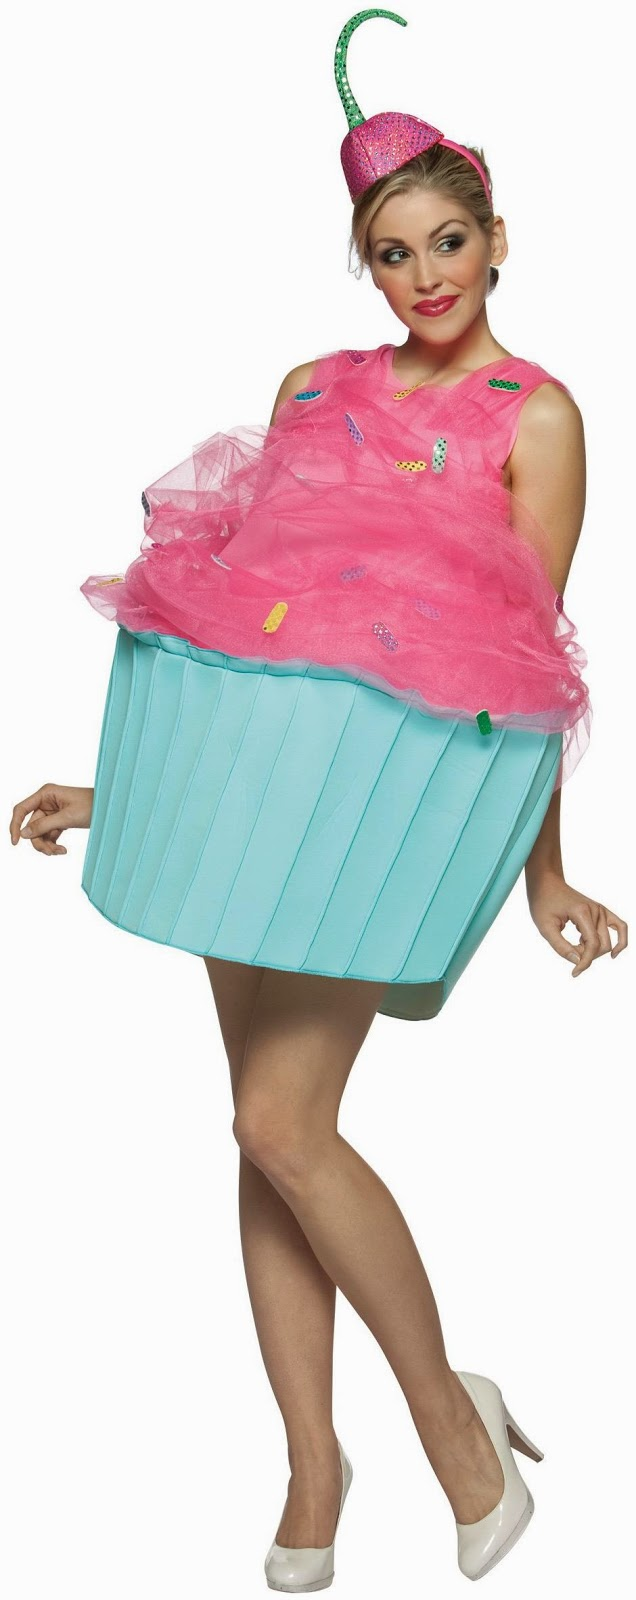 Sweet Eats Cupcake Adult Costume